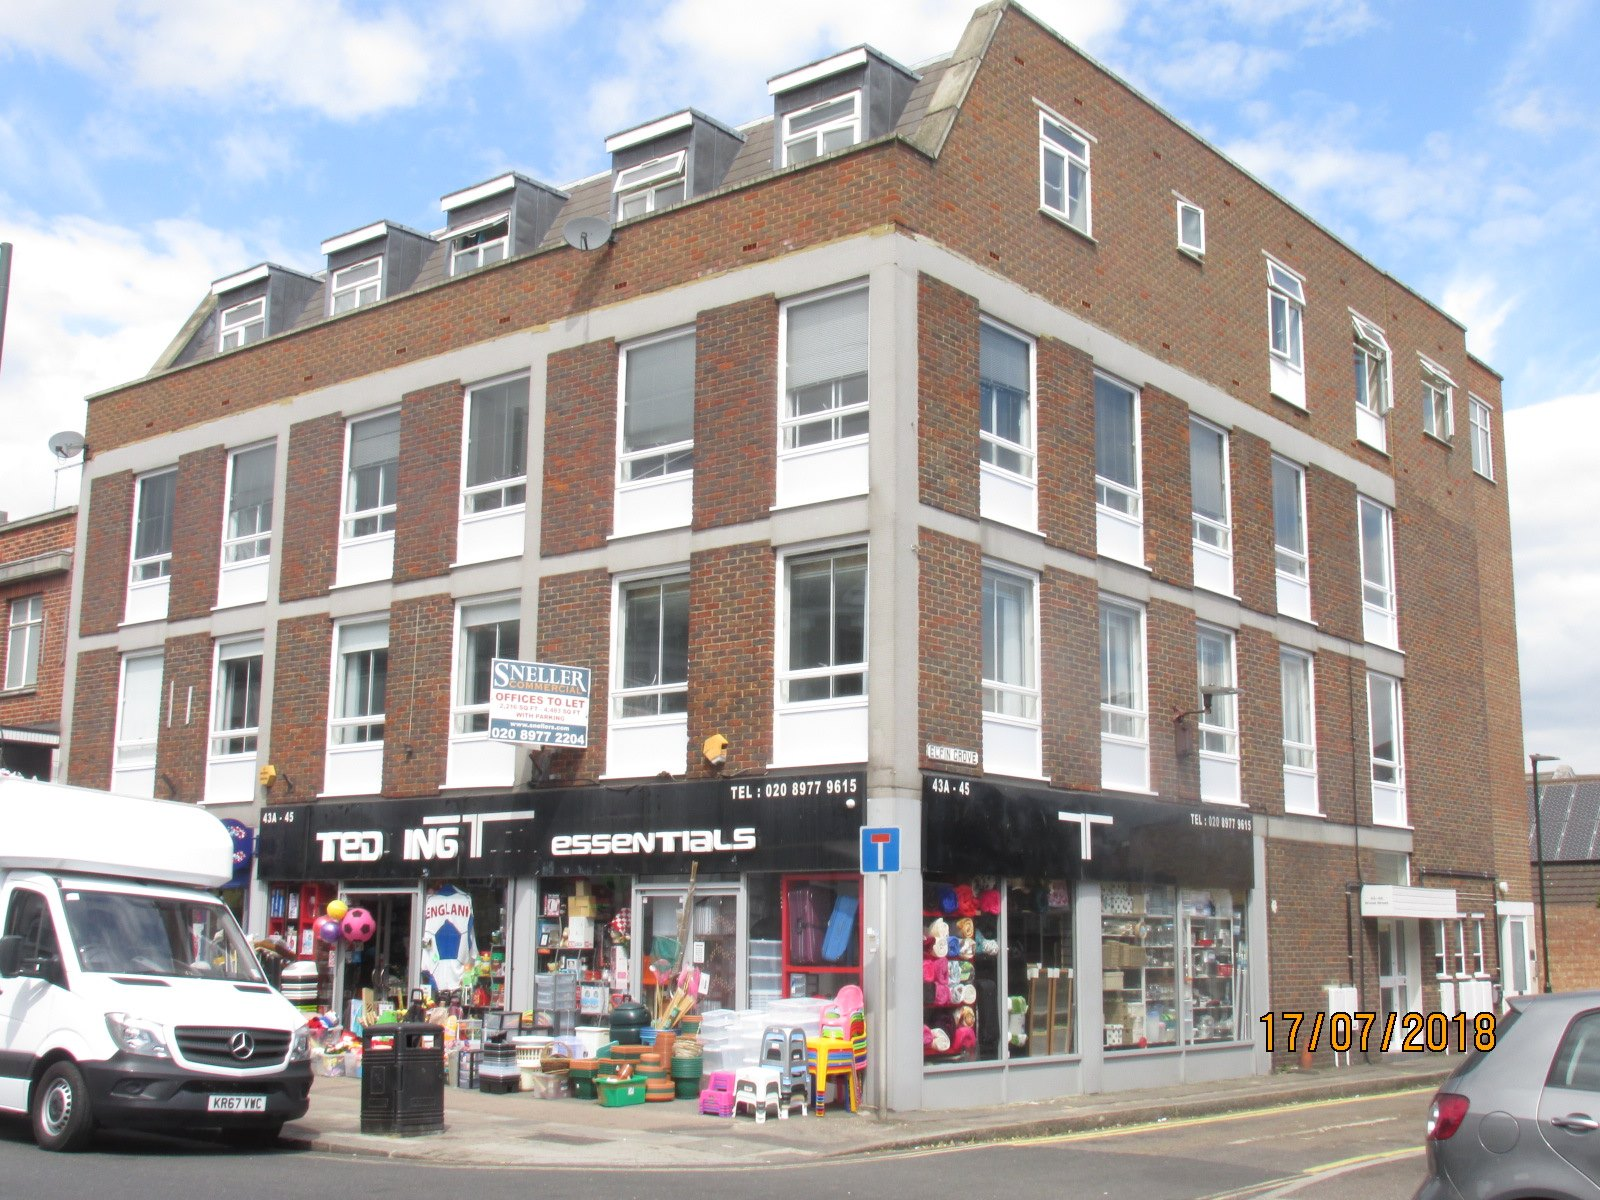 43-45 Broad Street, Teddington, TW11 8QZ